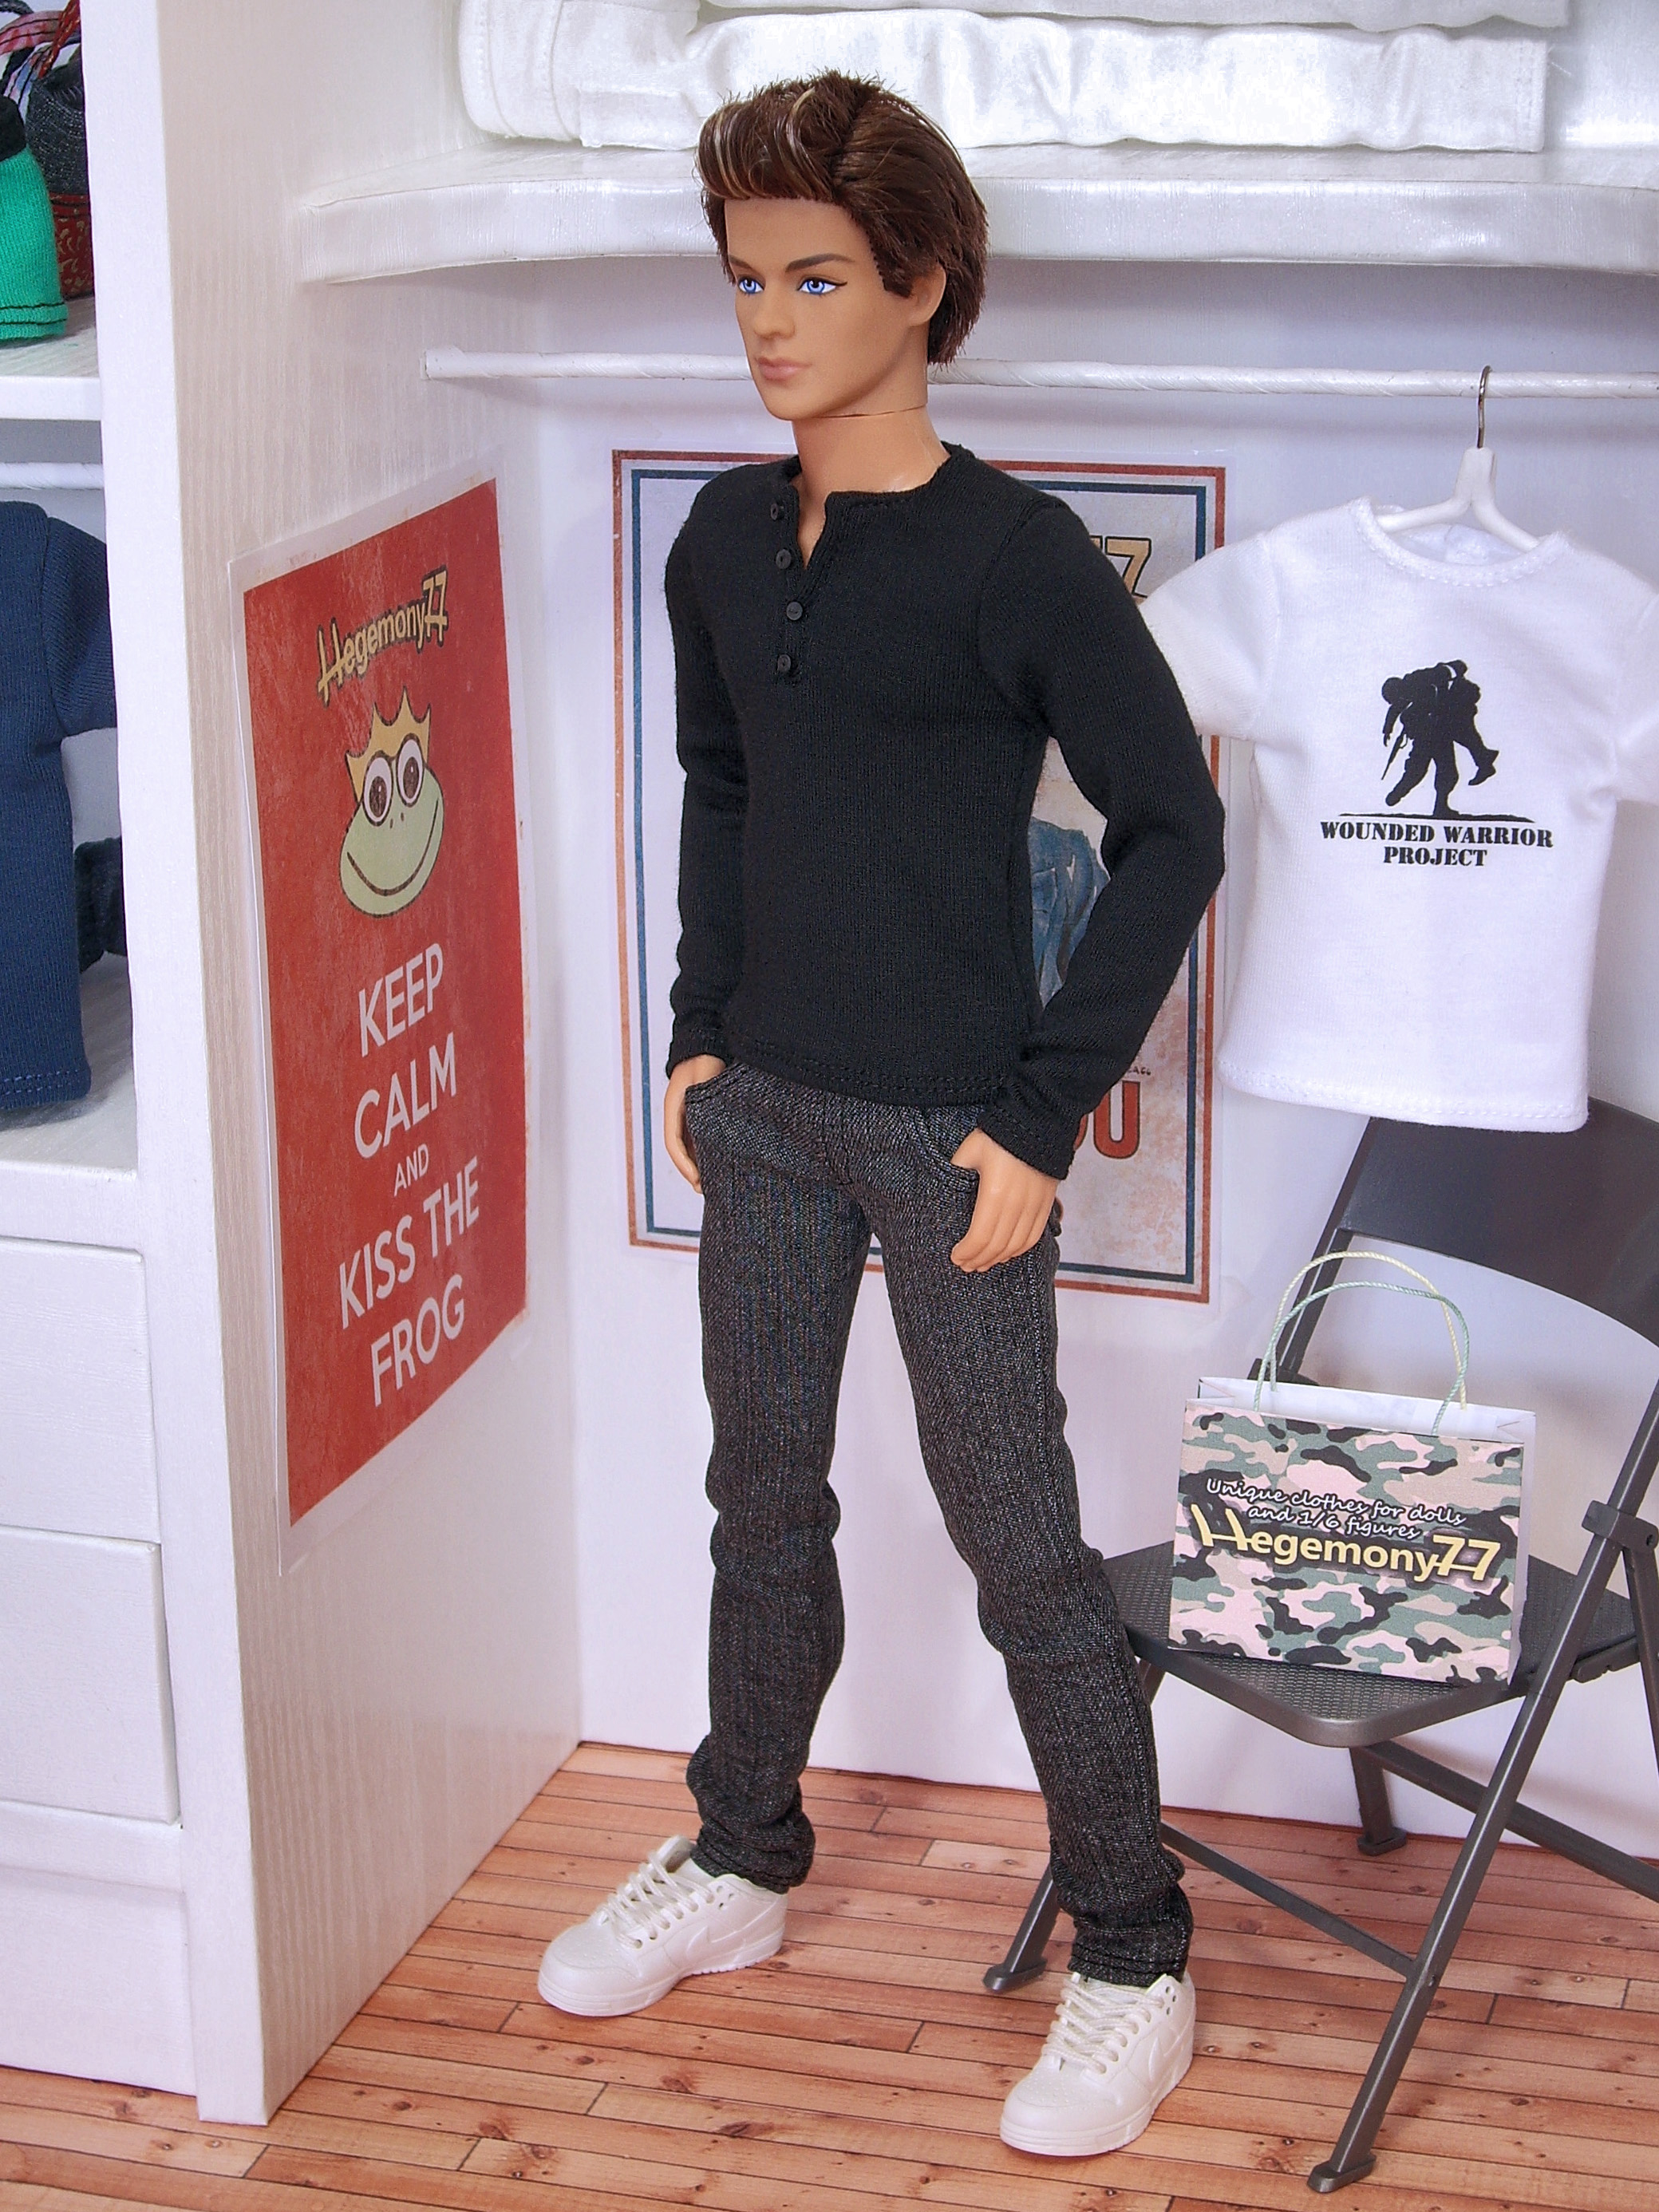 Ken doll in black henley t shirt and grey jeans pants